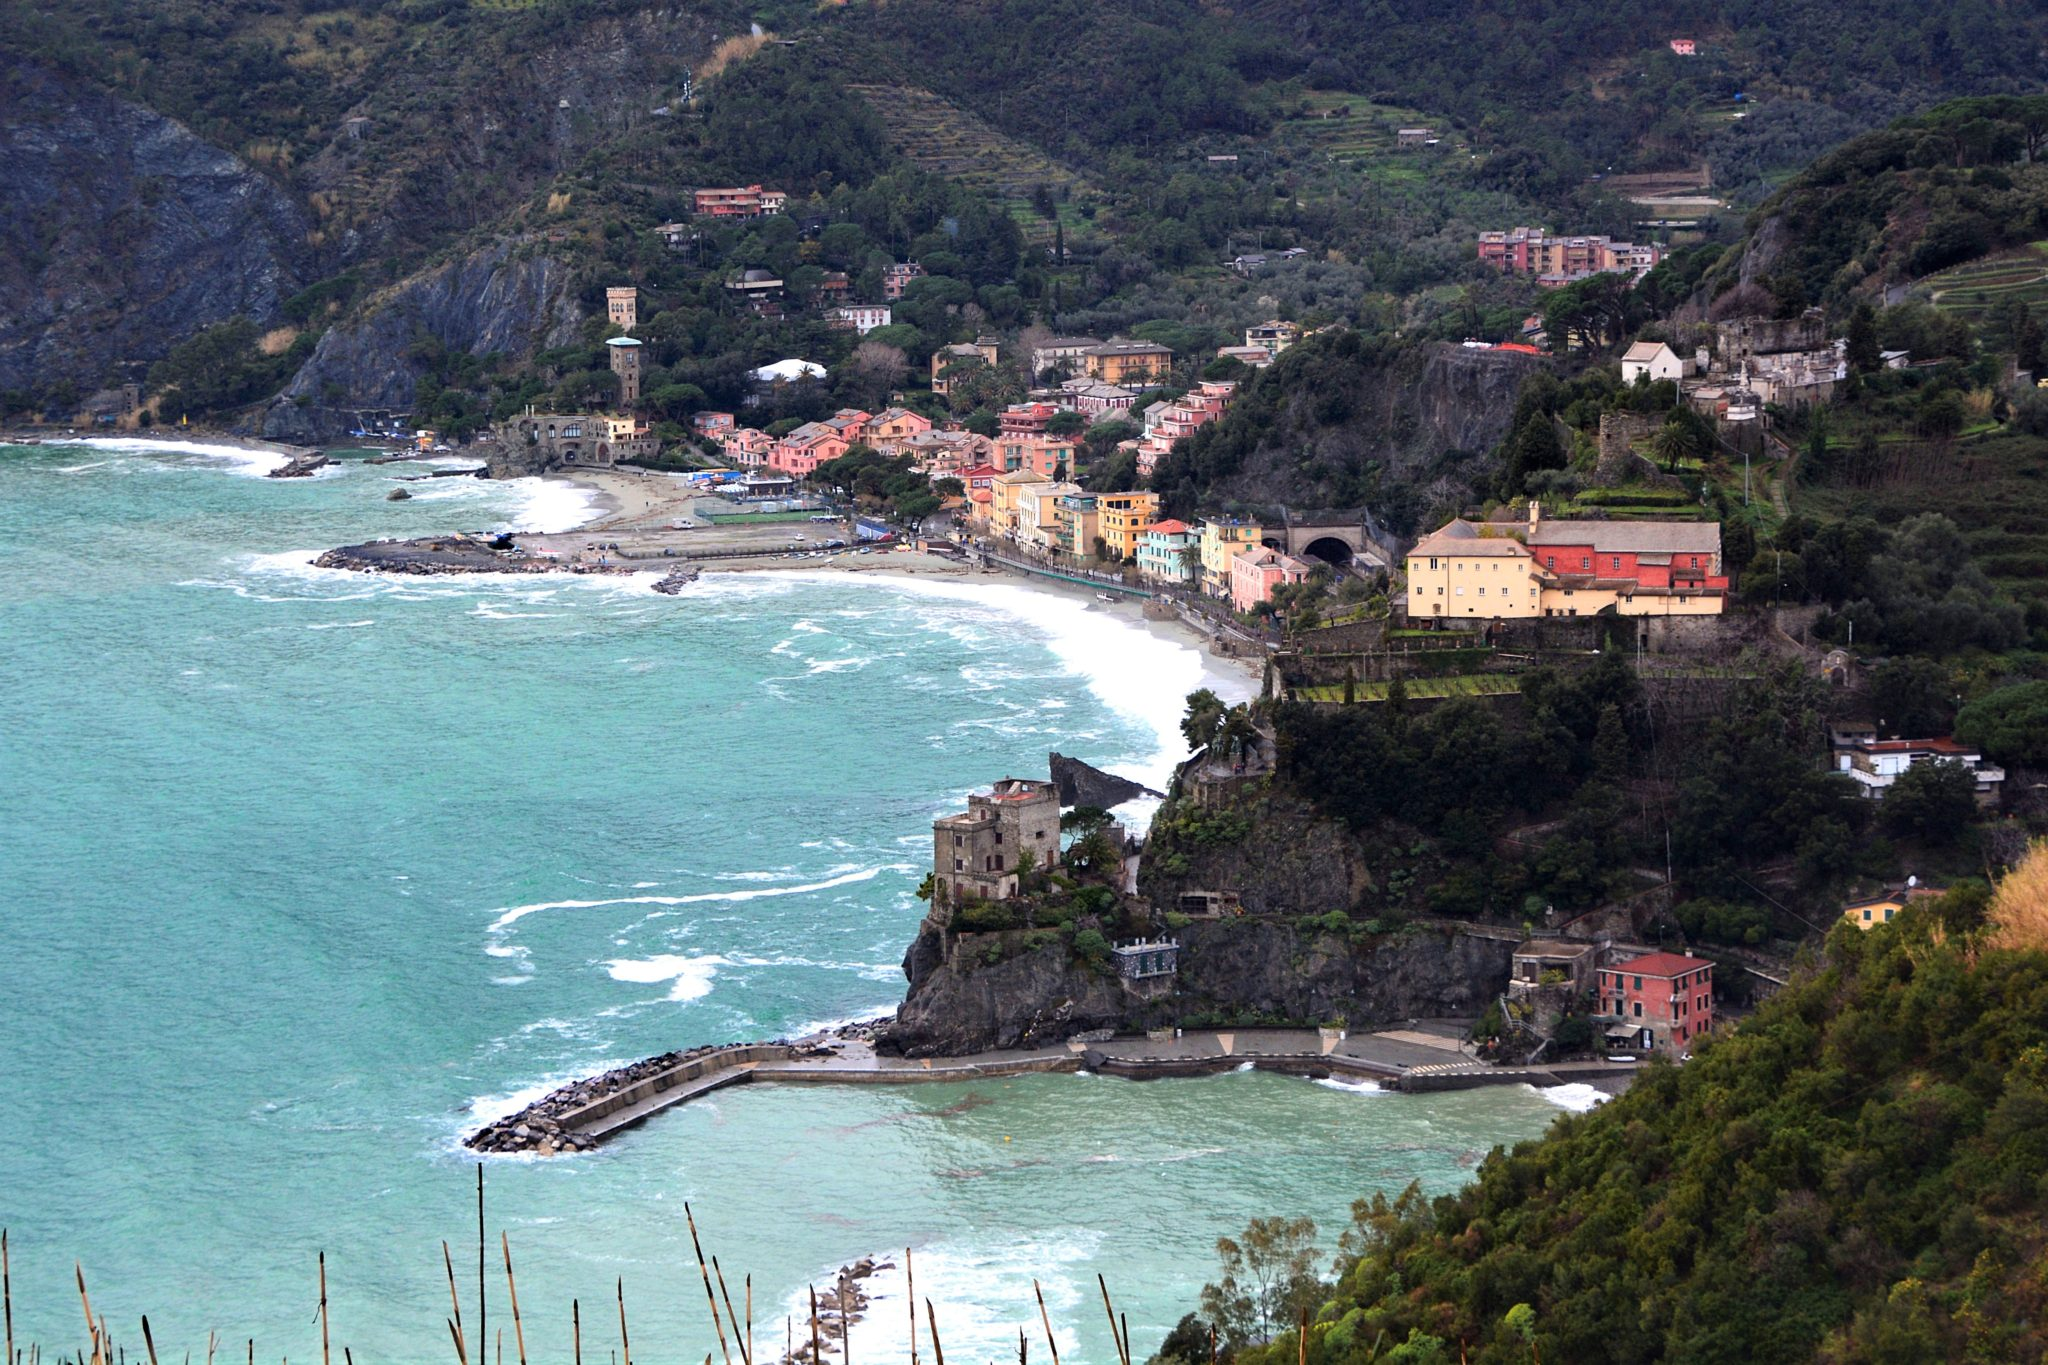 Hiking the Footpath Monterosso-Vernazza